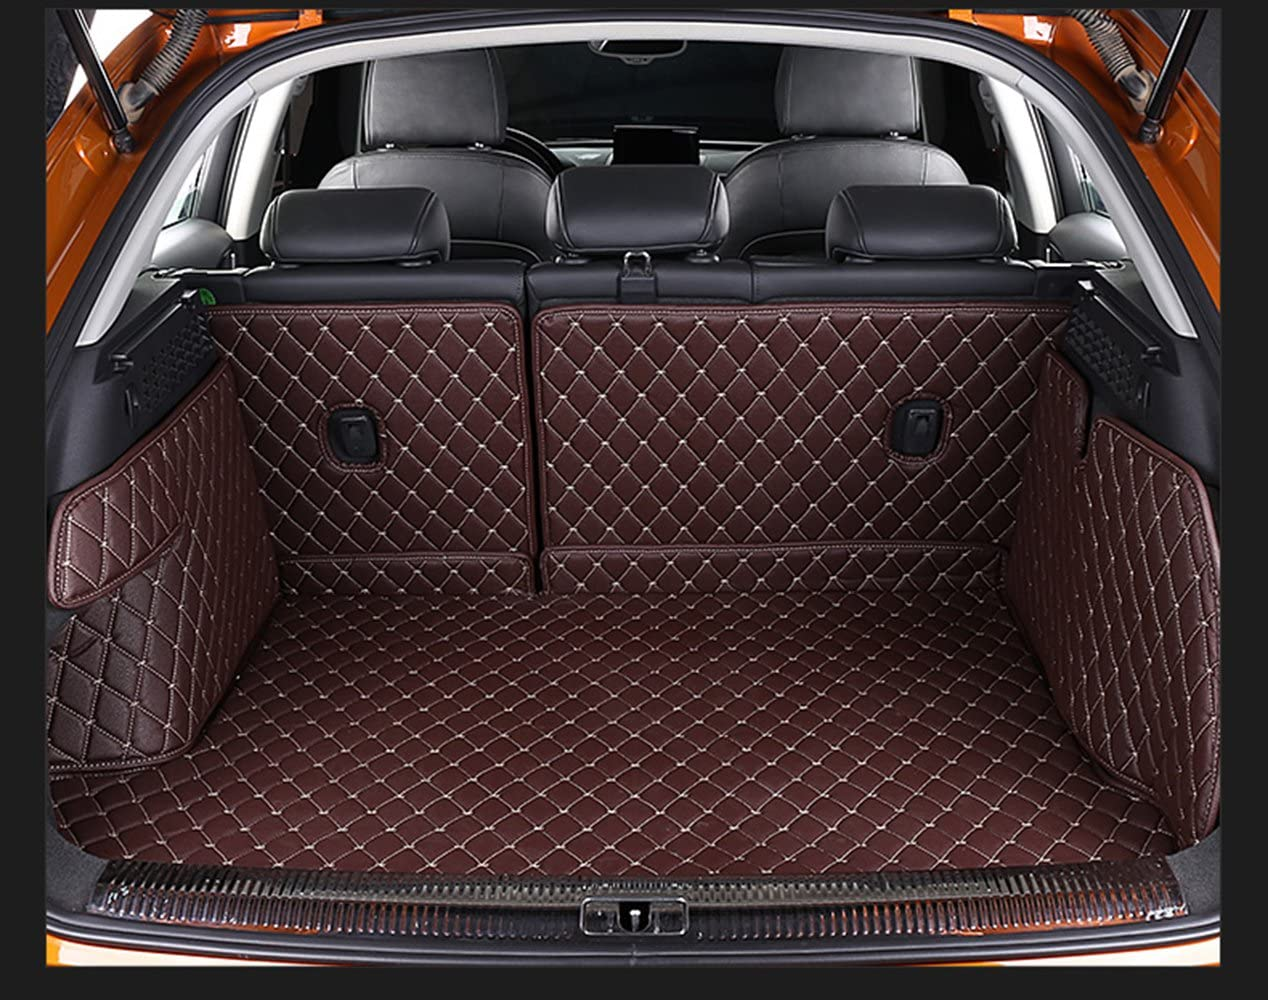 Worth-Mats Car Max 83% OFF Trunk Mat Ranking TOP10 fits for CX5 2nd Row Se Mazda 2016-2020